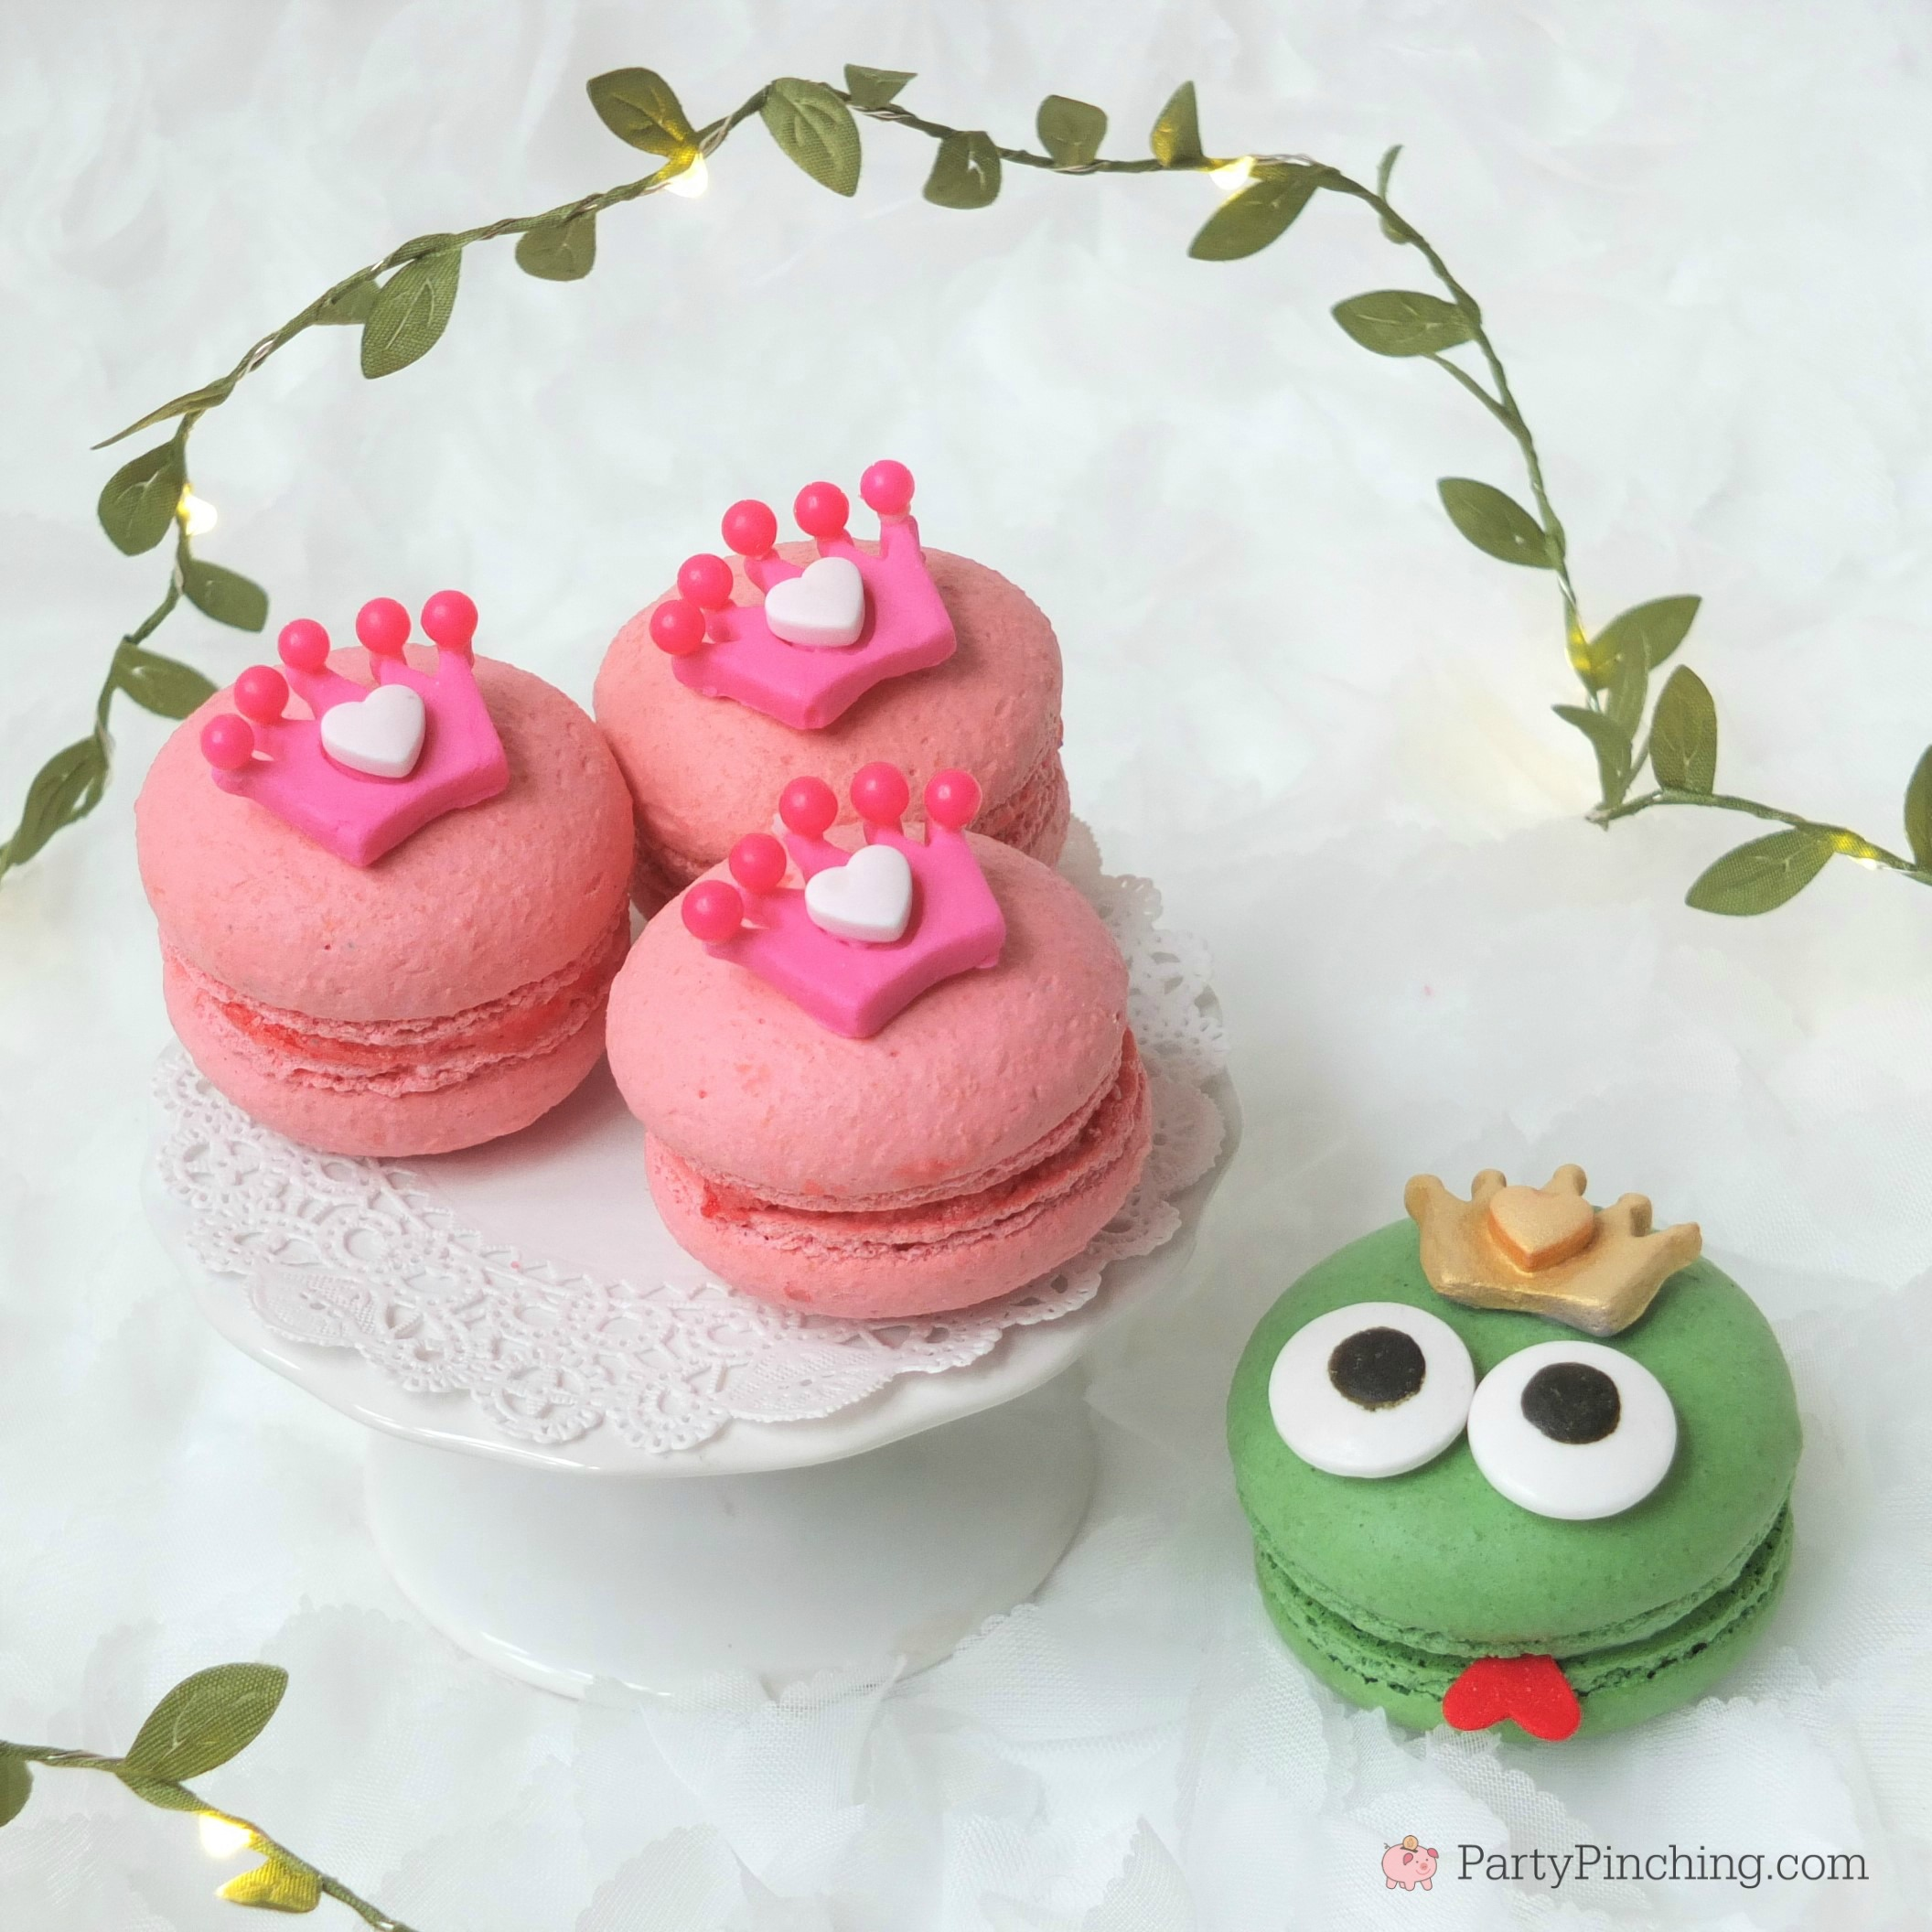 princess and frog macarons, cute macarons, princess party food ideas, cute desserts for pink girl party, princess party ideas, adorable dessert ideas, sweet treats, cute food, fun food for kids